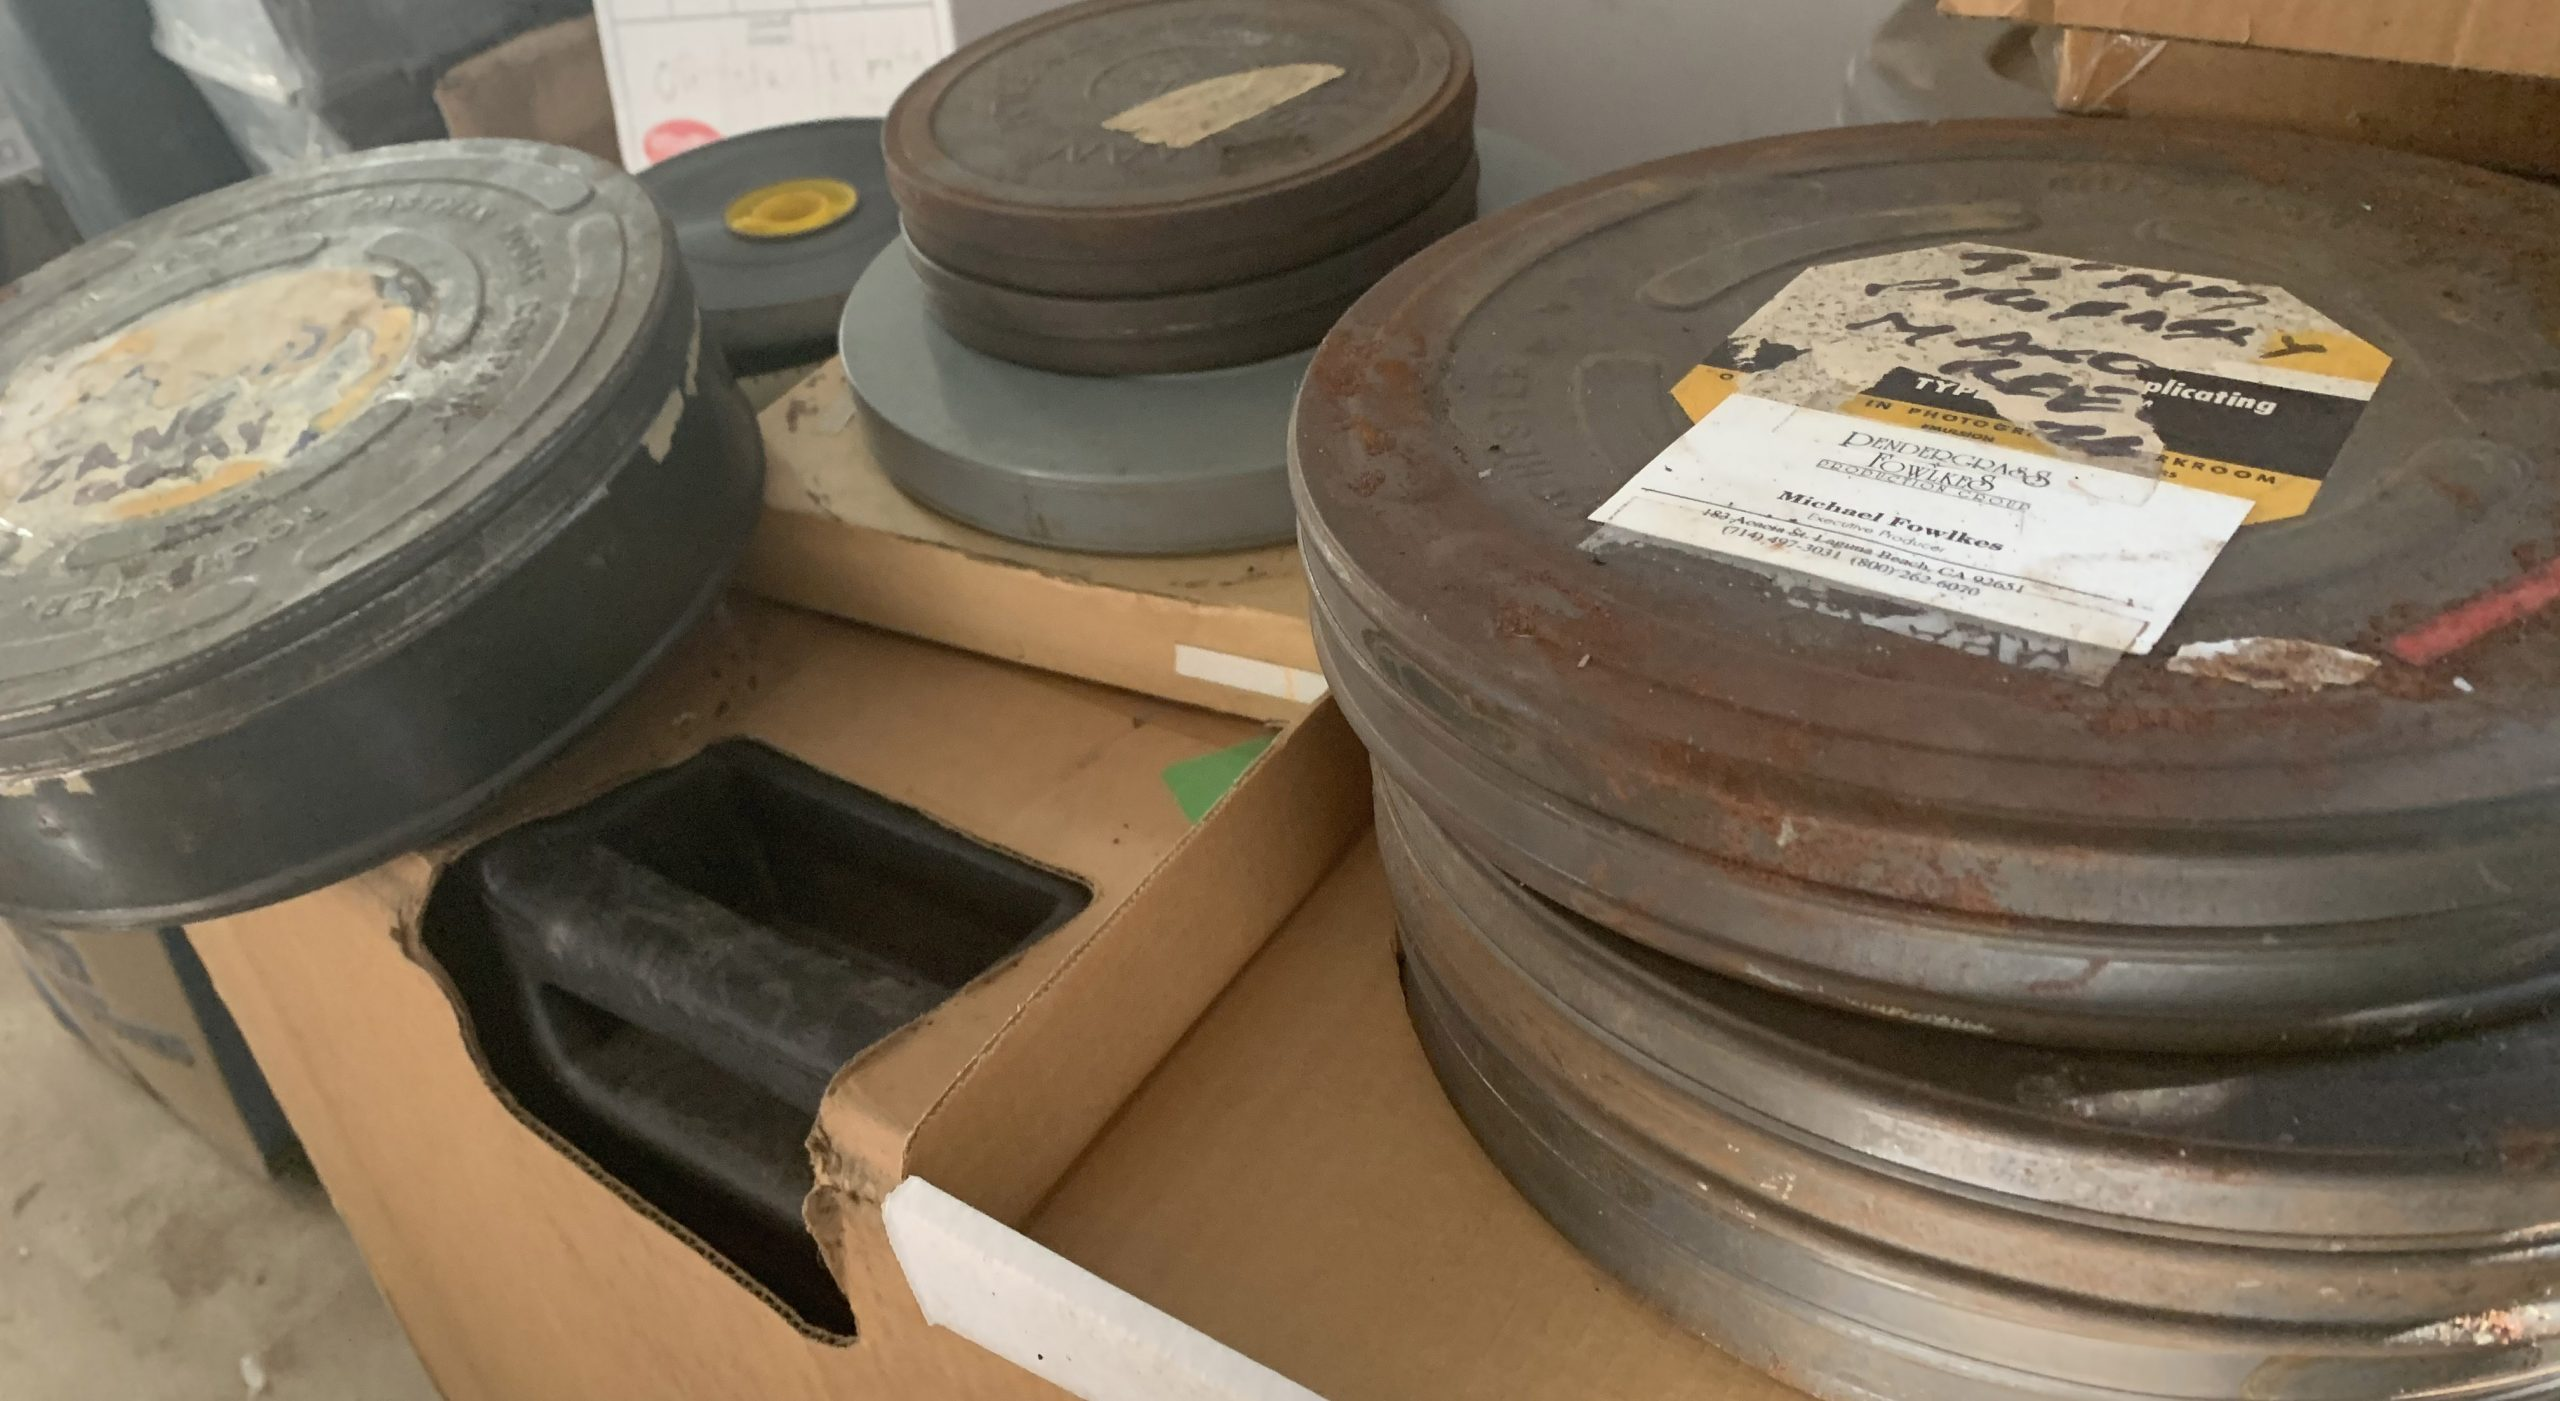 The_History_Of_Sportfishing_Old_Reels_Film-Preservation_2